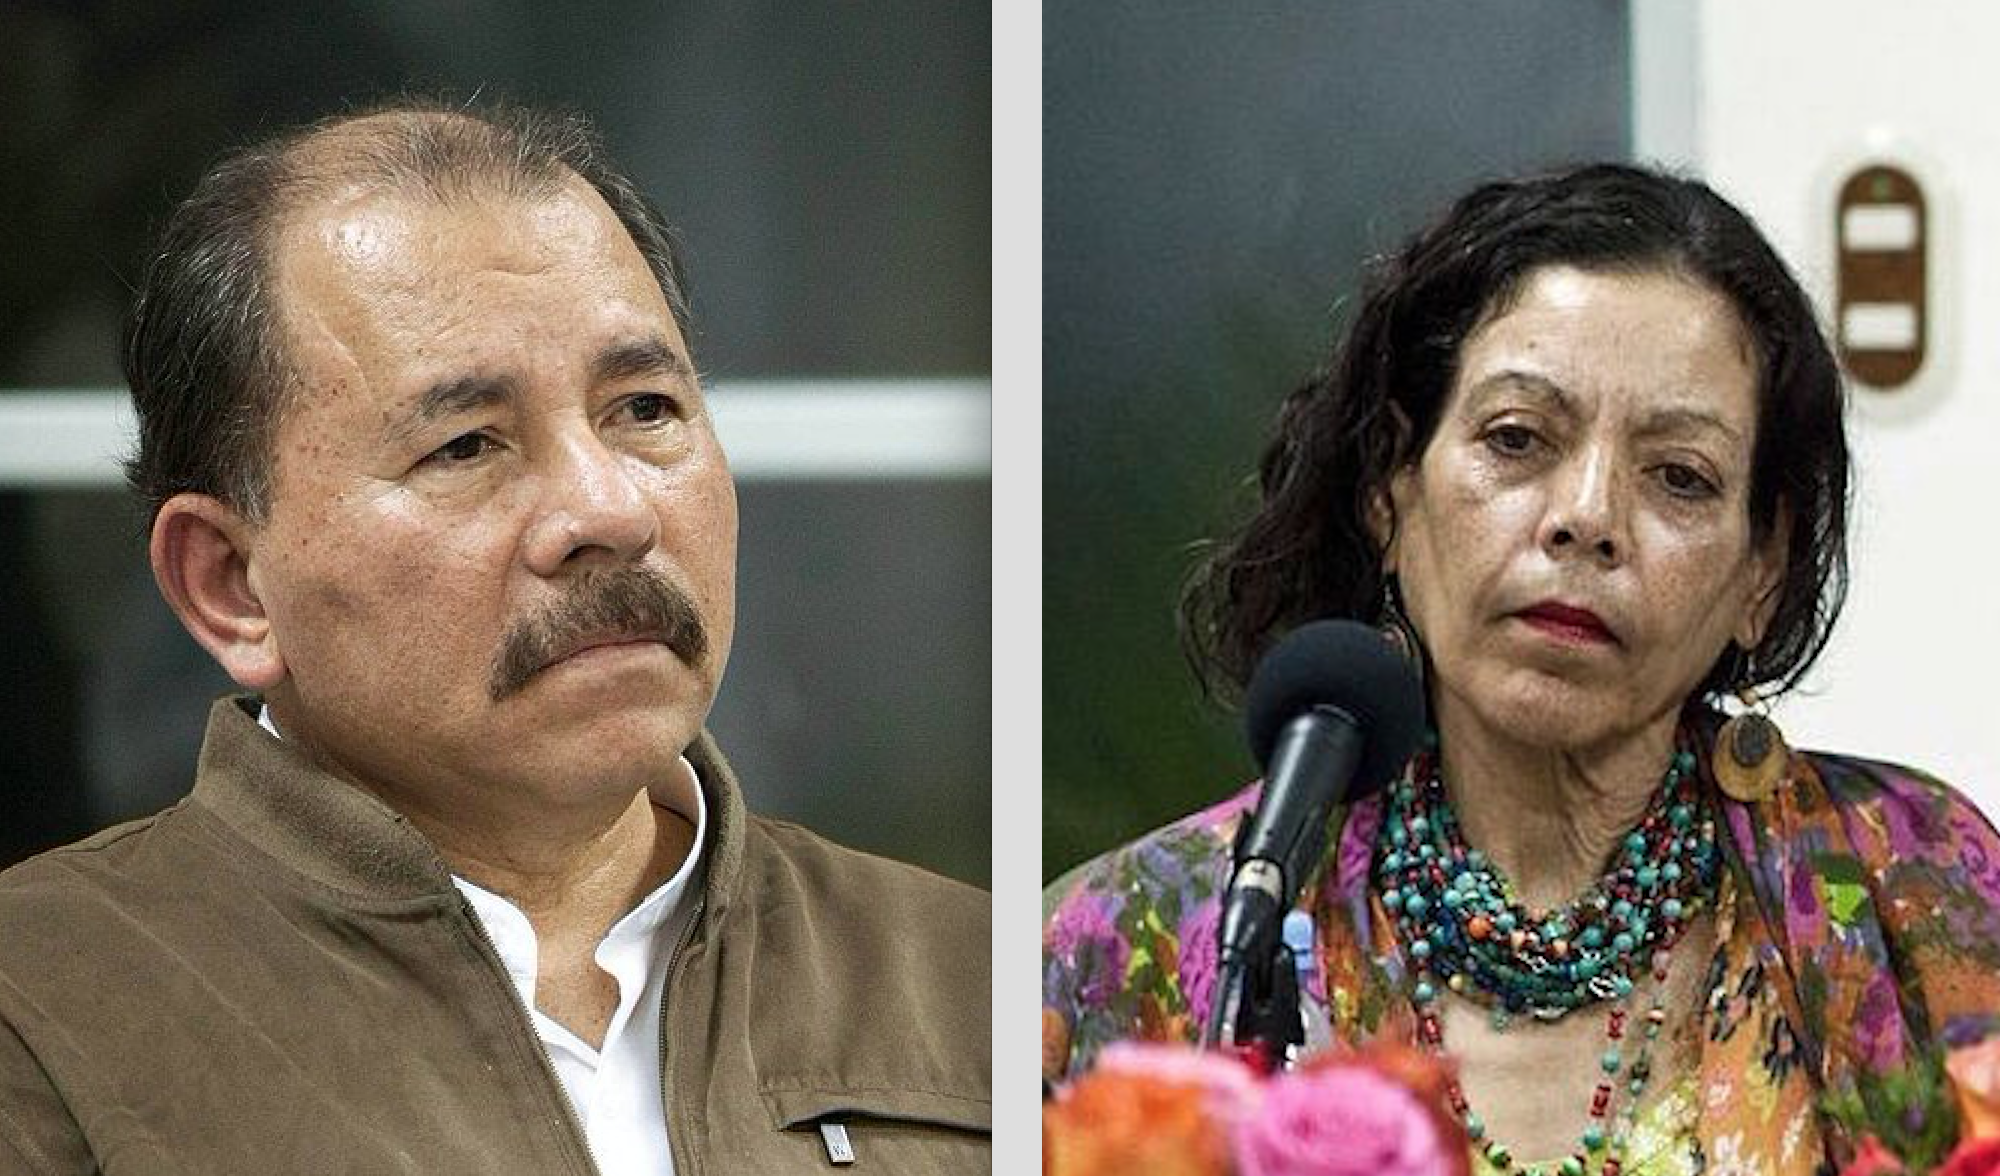 President Ortega and his wife, vice-president Rosario Murillo.